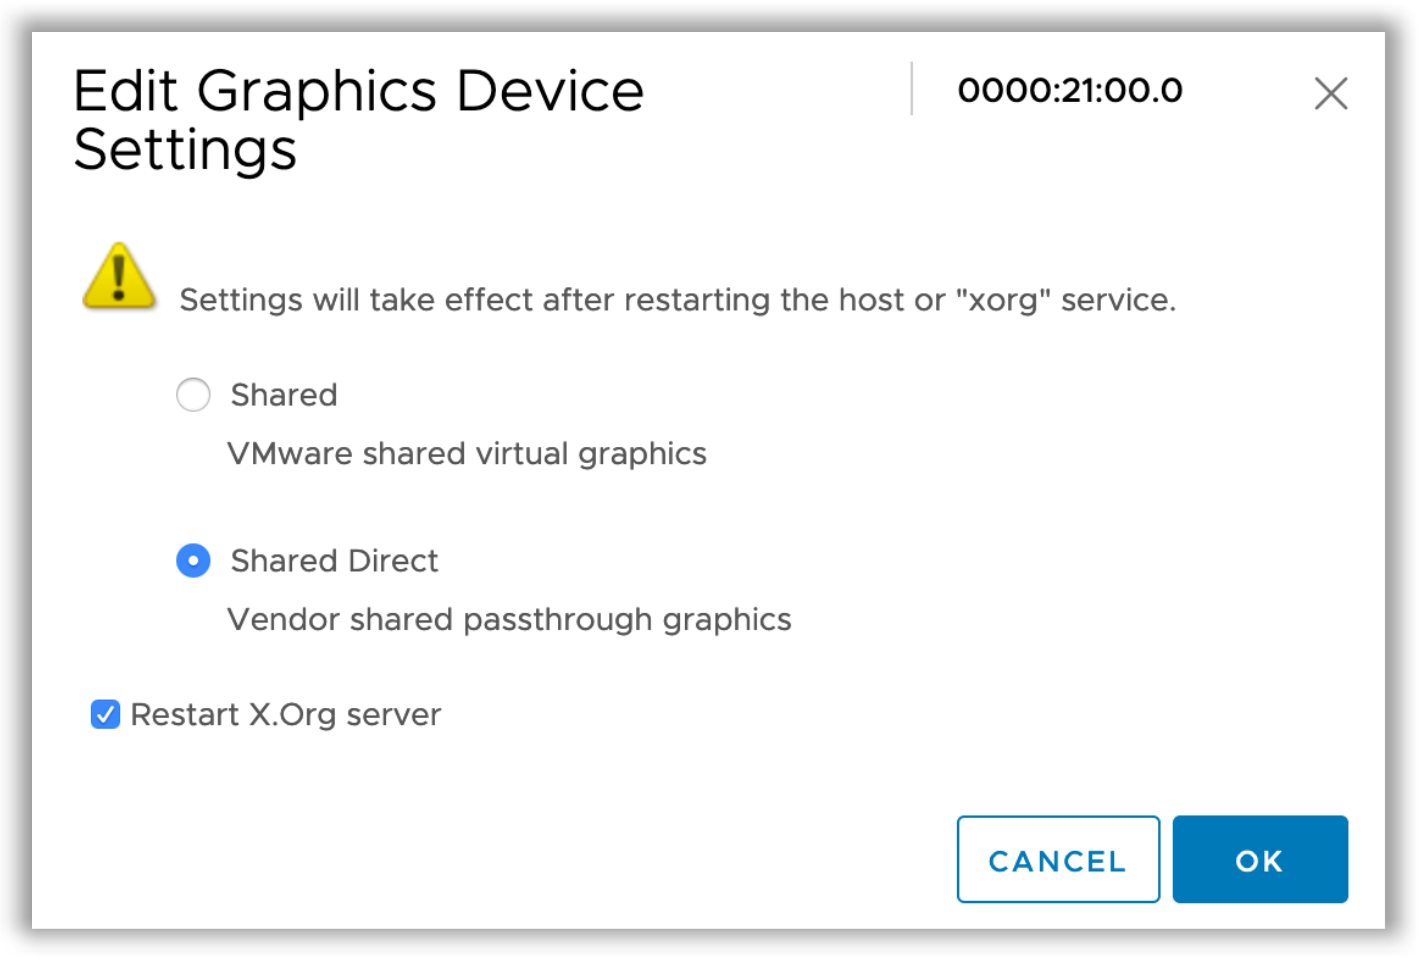 vendor shared passthrough graphics, graphics device settings, xorg